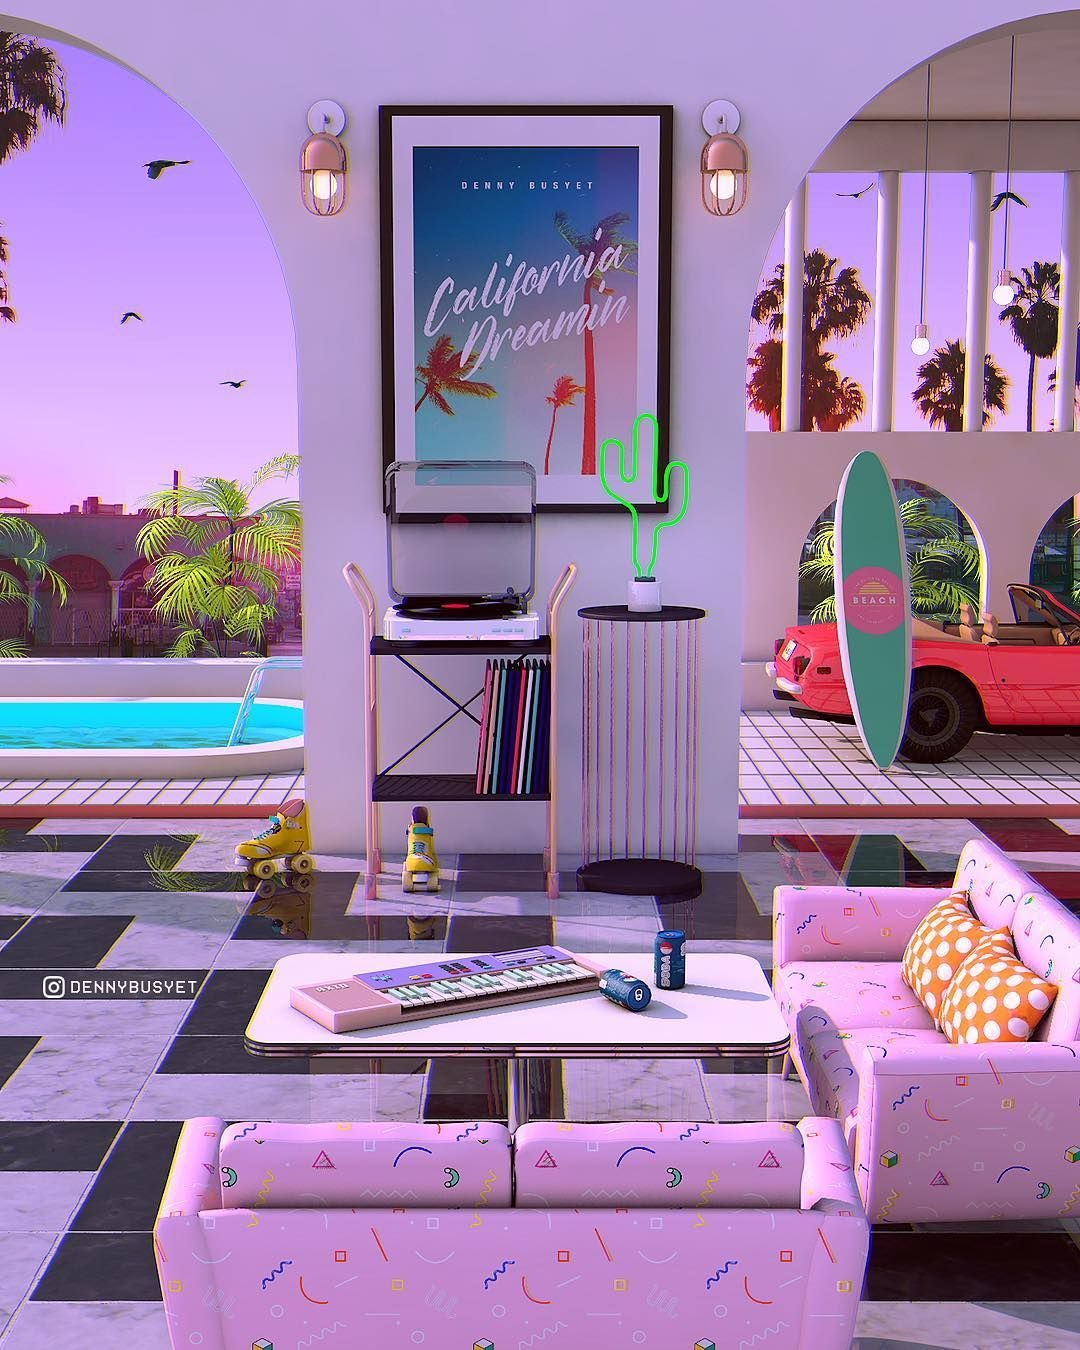 90s Aesthetic Room Wallpapers Wallpaper Cave 90s aesthetic room wallpapers